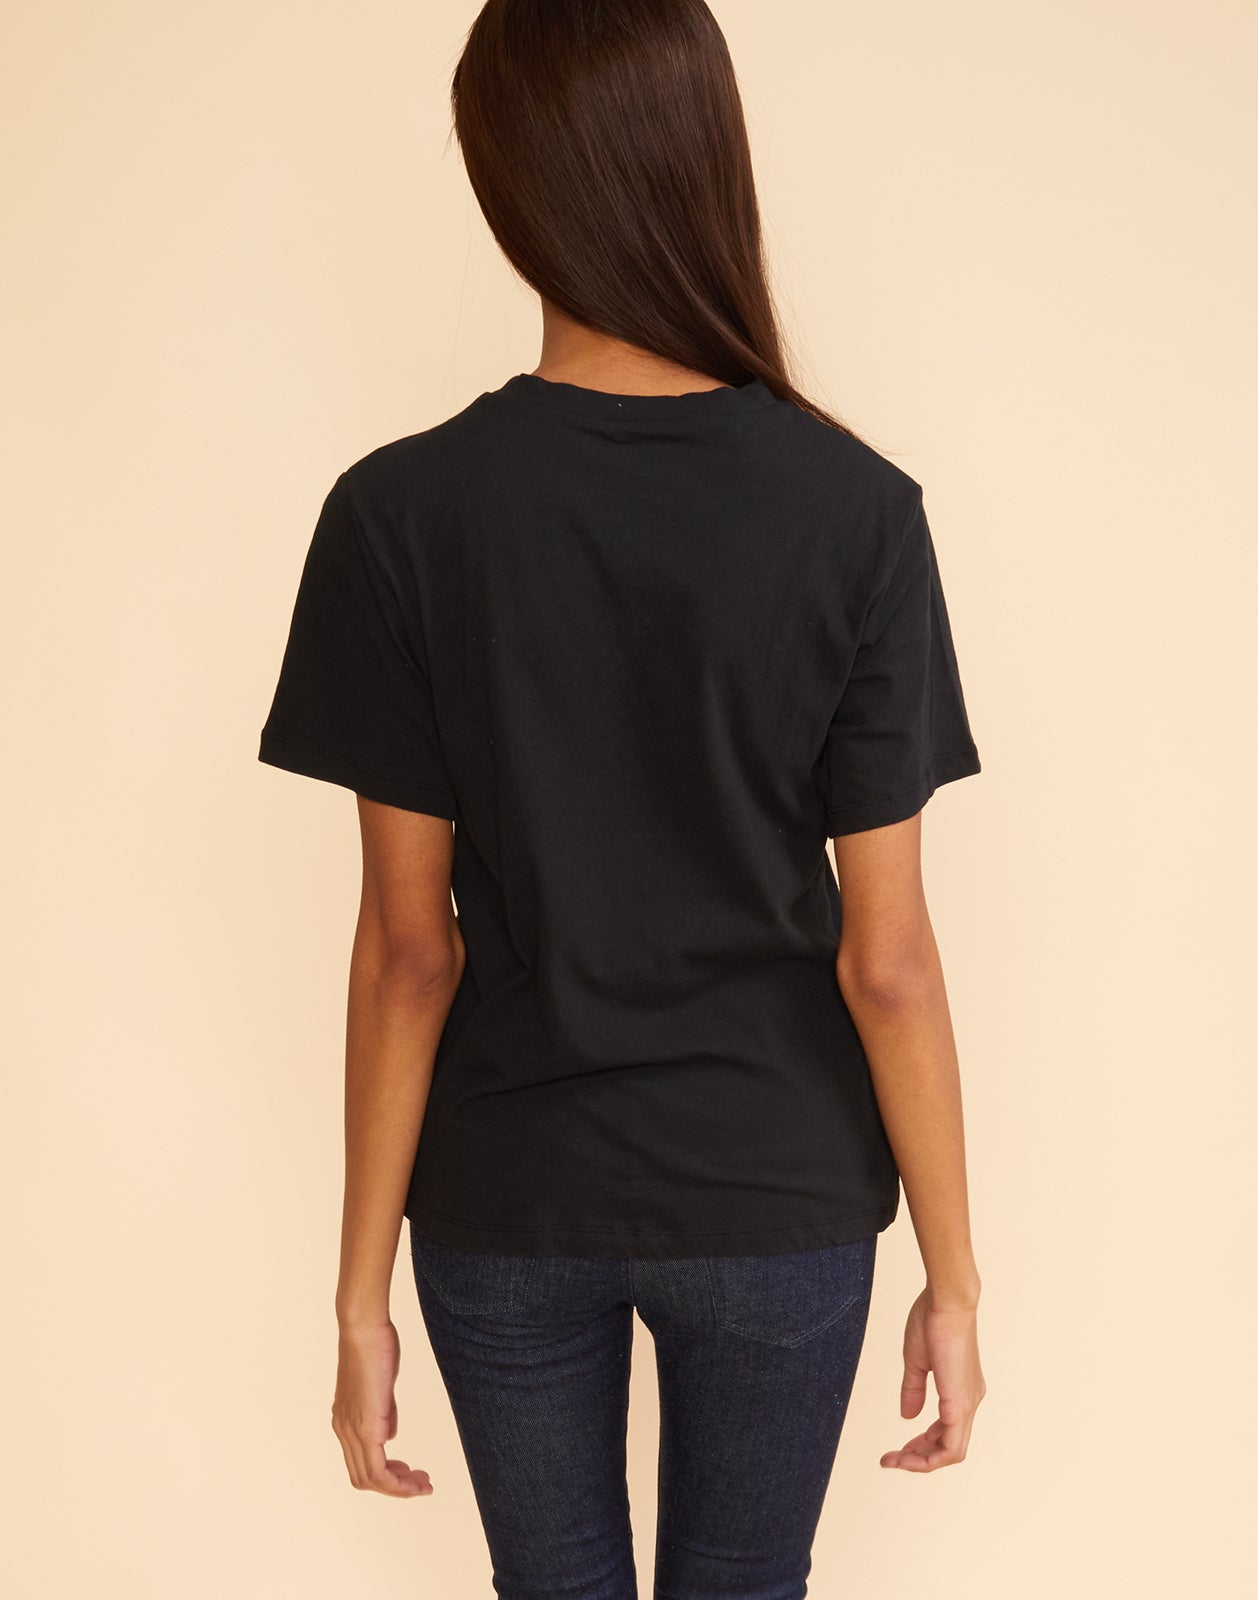 Back view of 'momtauk' in solid black cotton